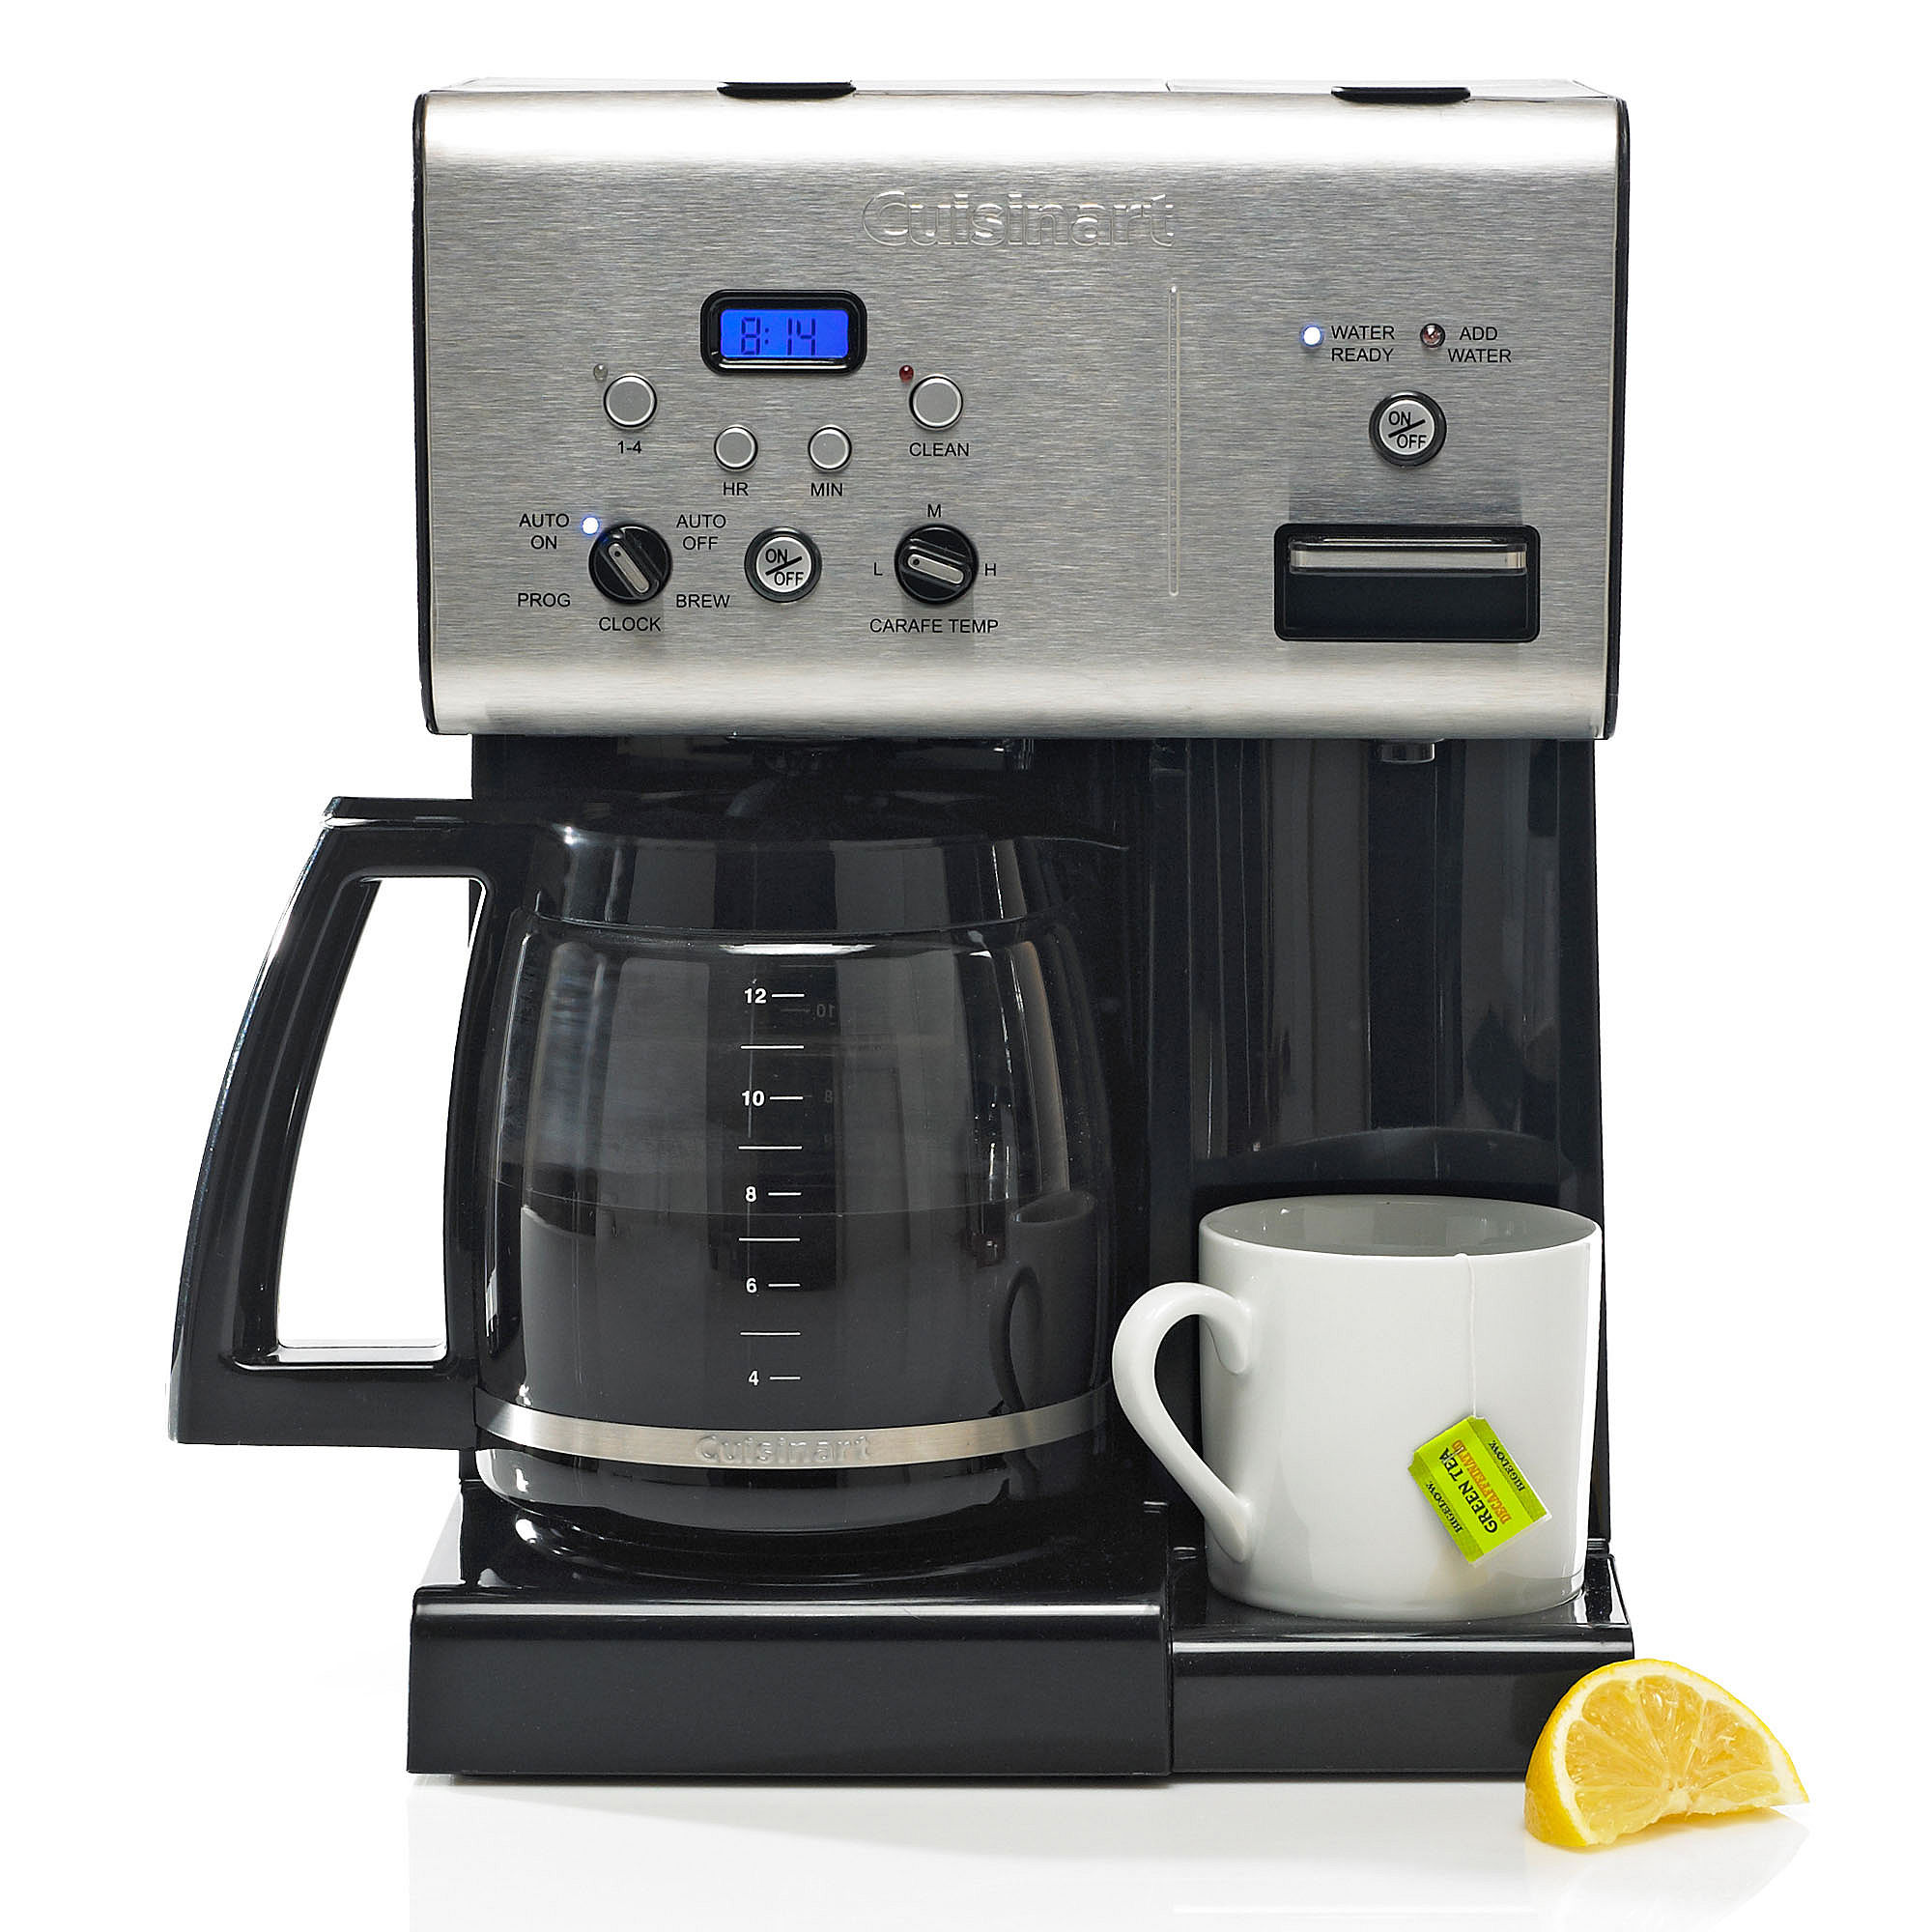 Cuisinart 10 Cup Coffee Maker With Hot Water System : cuisinart chw 12 coffee maker 12 cup programmable with hot water system - Find it at Shopwiki